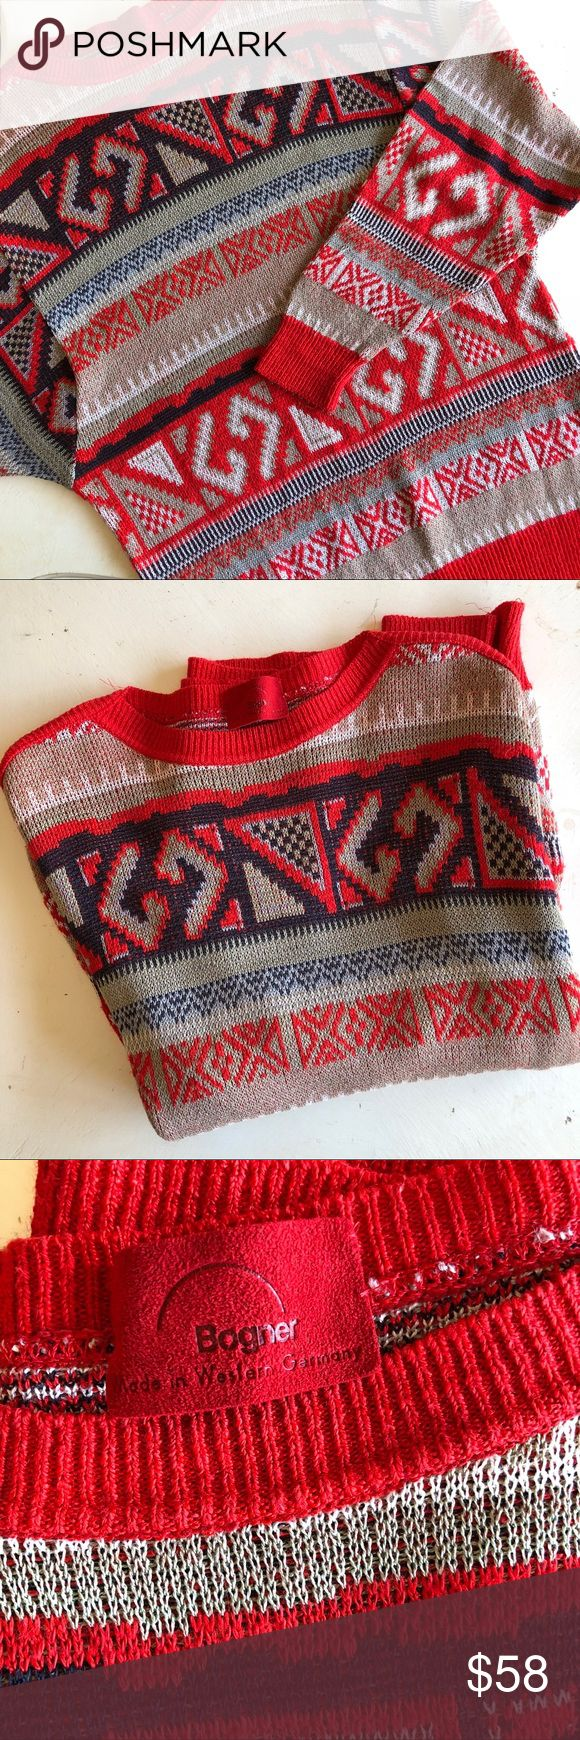 "Bogner bright red knit patterned sweater Size small knit sweater , bold red pattern. Linen, cotton & acrylic blend, Silky & lightweight. Bogner brand, Made in Germany- bust measures 40"" , length from shoulder to hemline 26"" great condition! Bogner Sweaters"